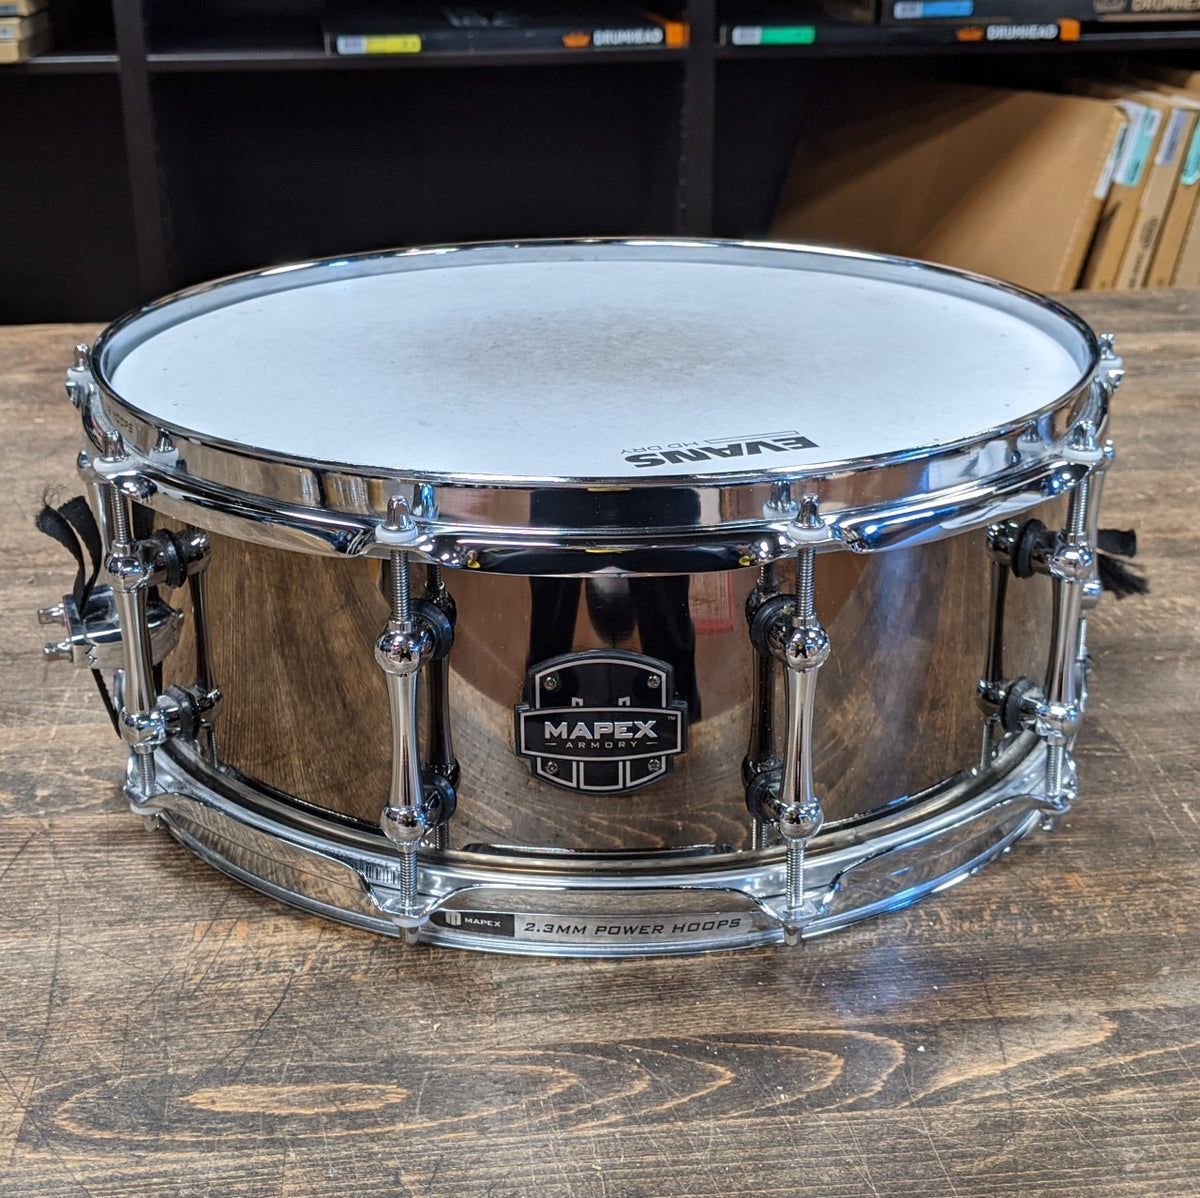 Mapex Armory 5.5x14 Tomahawk Snare Drum - Used